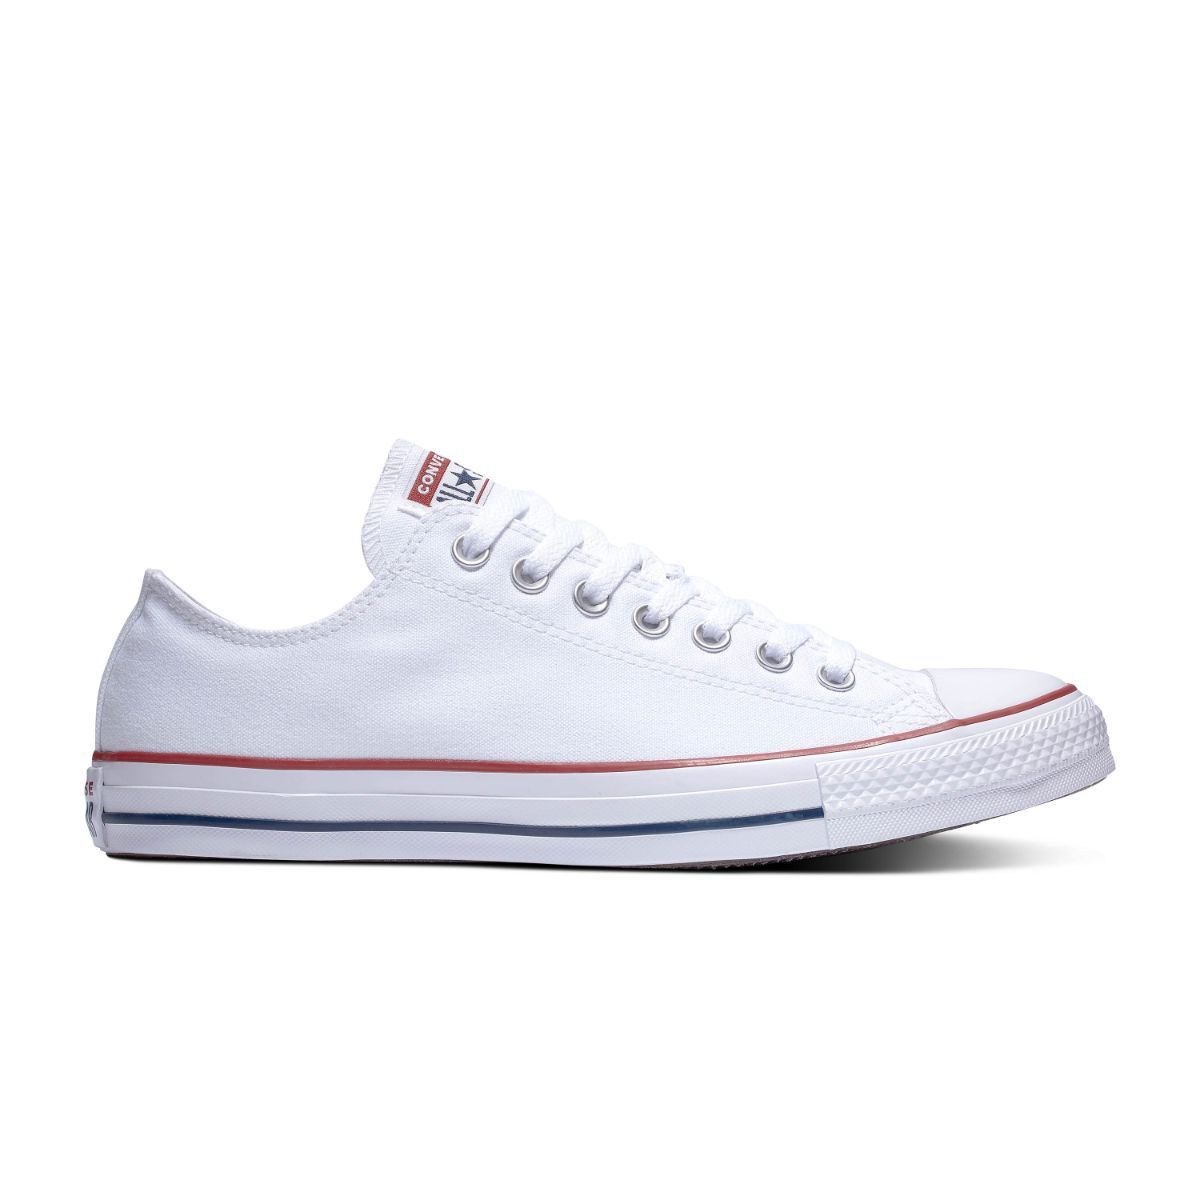 Chuck Taylor All Star White Low Top